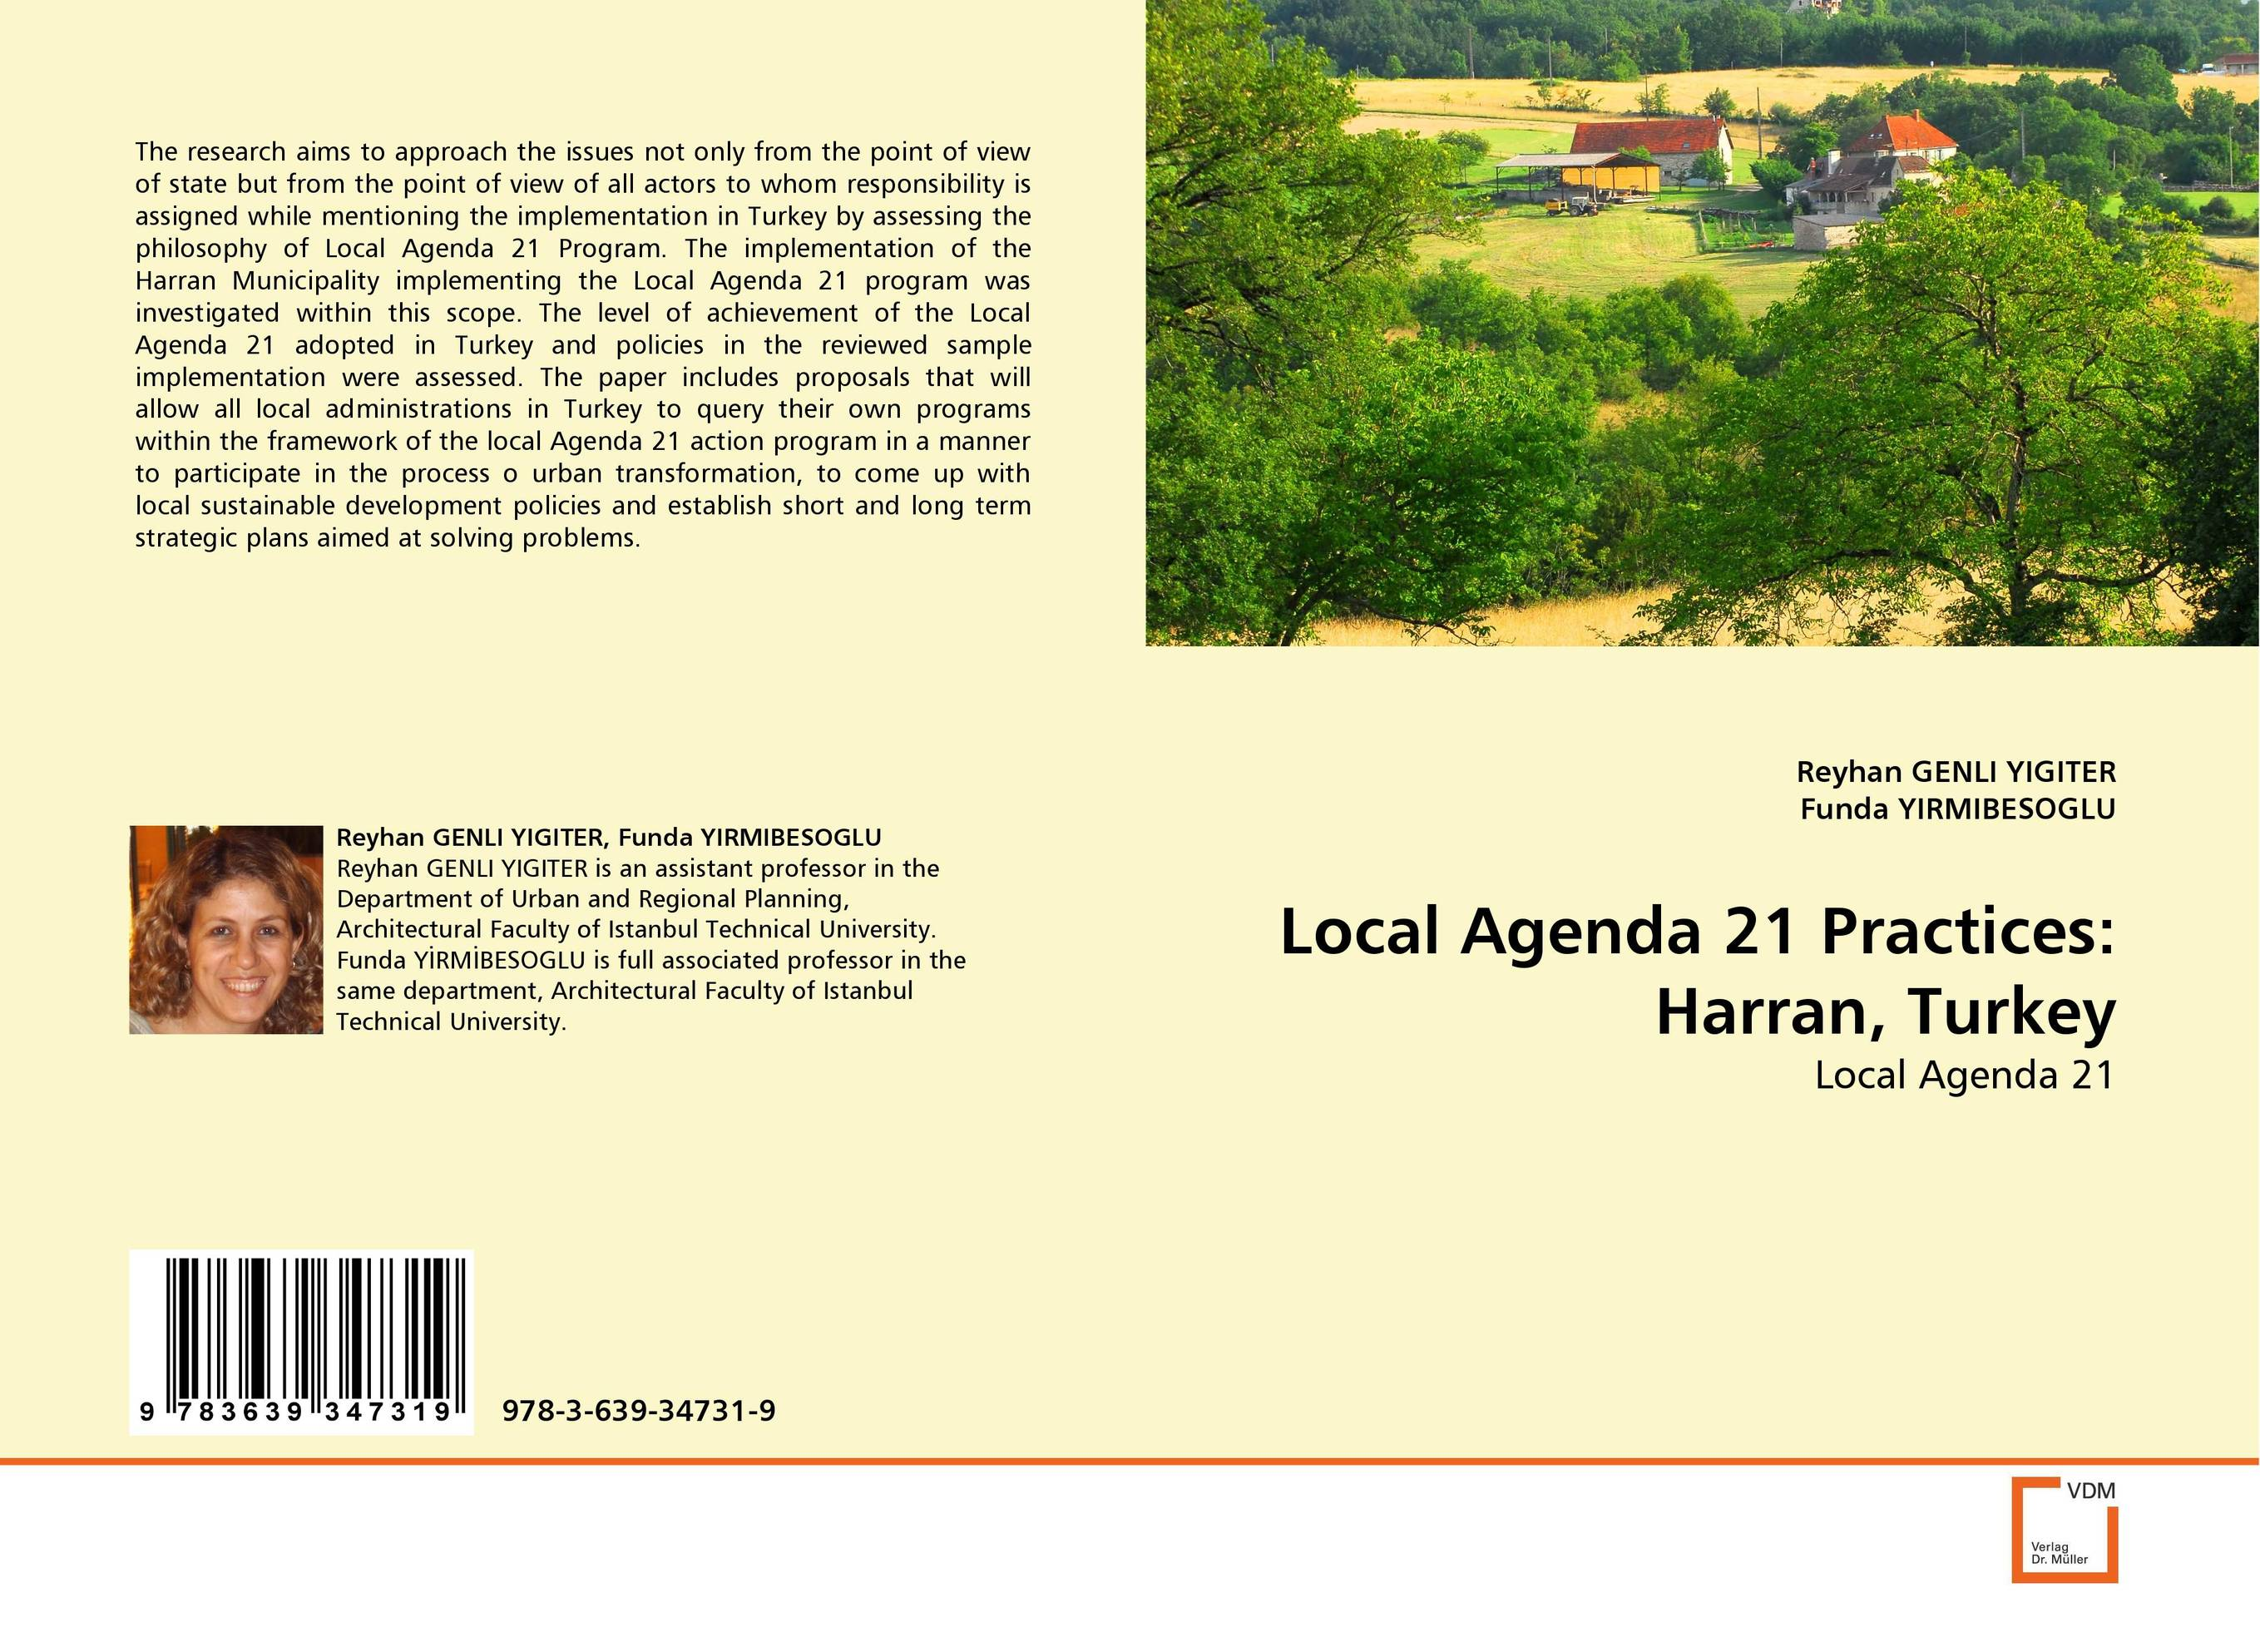 Local Agenda 21 Practices: Harran, Turkey